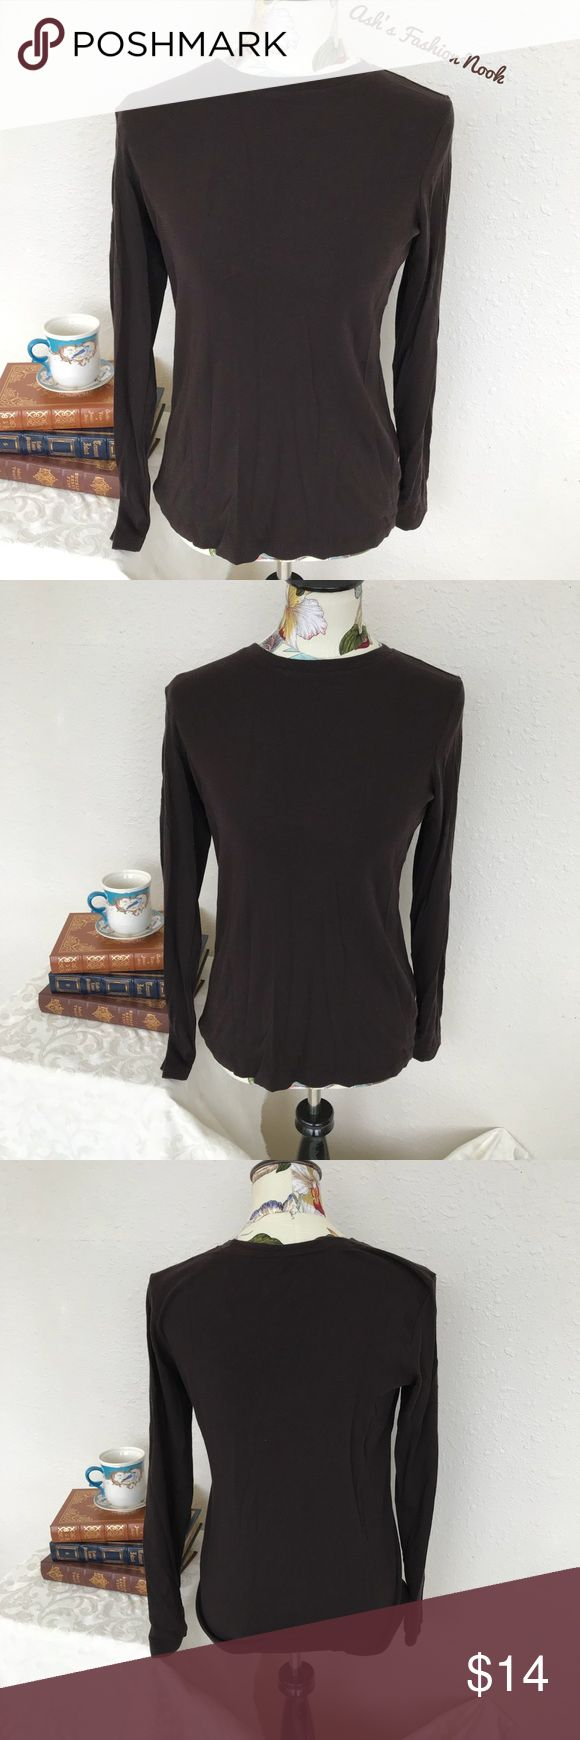 💠Ruff Hewn-Brown Long Sleeved Layering Tee💠 🍄Brand: Ruff Hewn🍄 Color(s): dark brown  Size: large Stretch: yes Fabric Content: see pic Measurements: see pic Condition: EUC! Note(s): no flaws! Great layering piece!   📦Bundle your likes, and I will send you a no obligation offer. Or, submit a reasonable offer!📦 Ruff Hewn Tops Tees - Long Sleeve